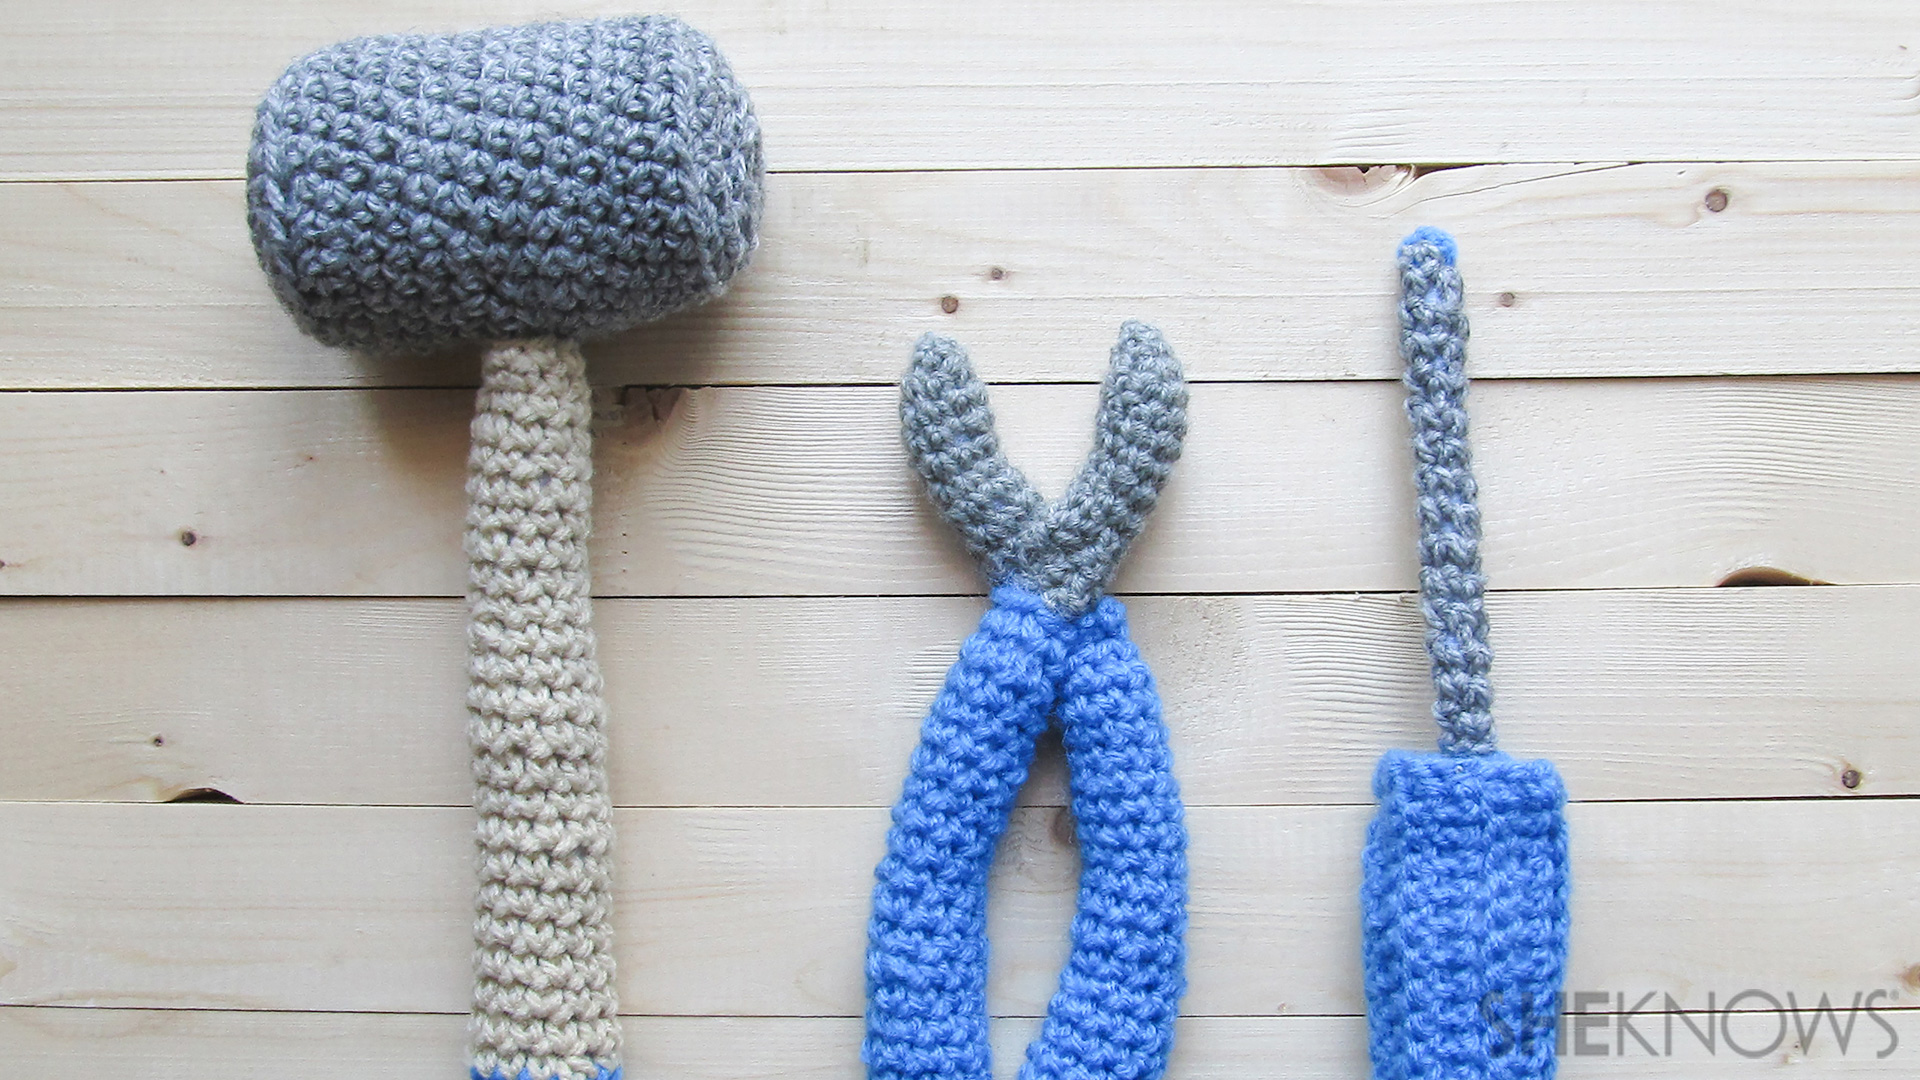 Crochet a tool set for Father's Day